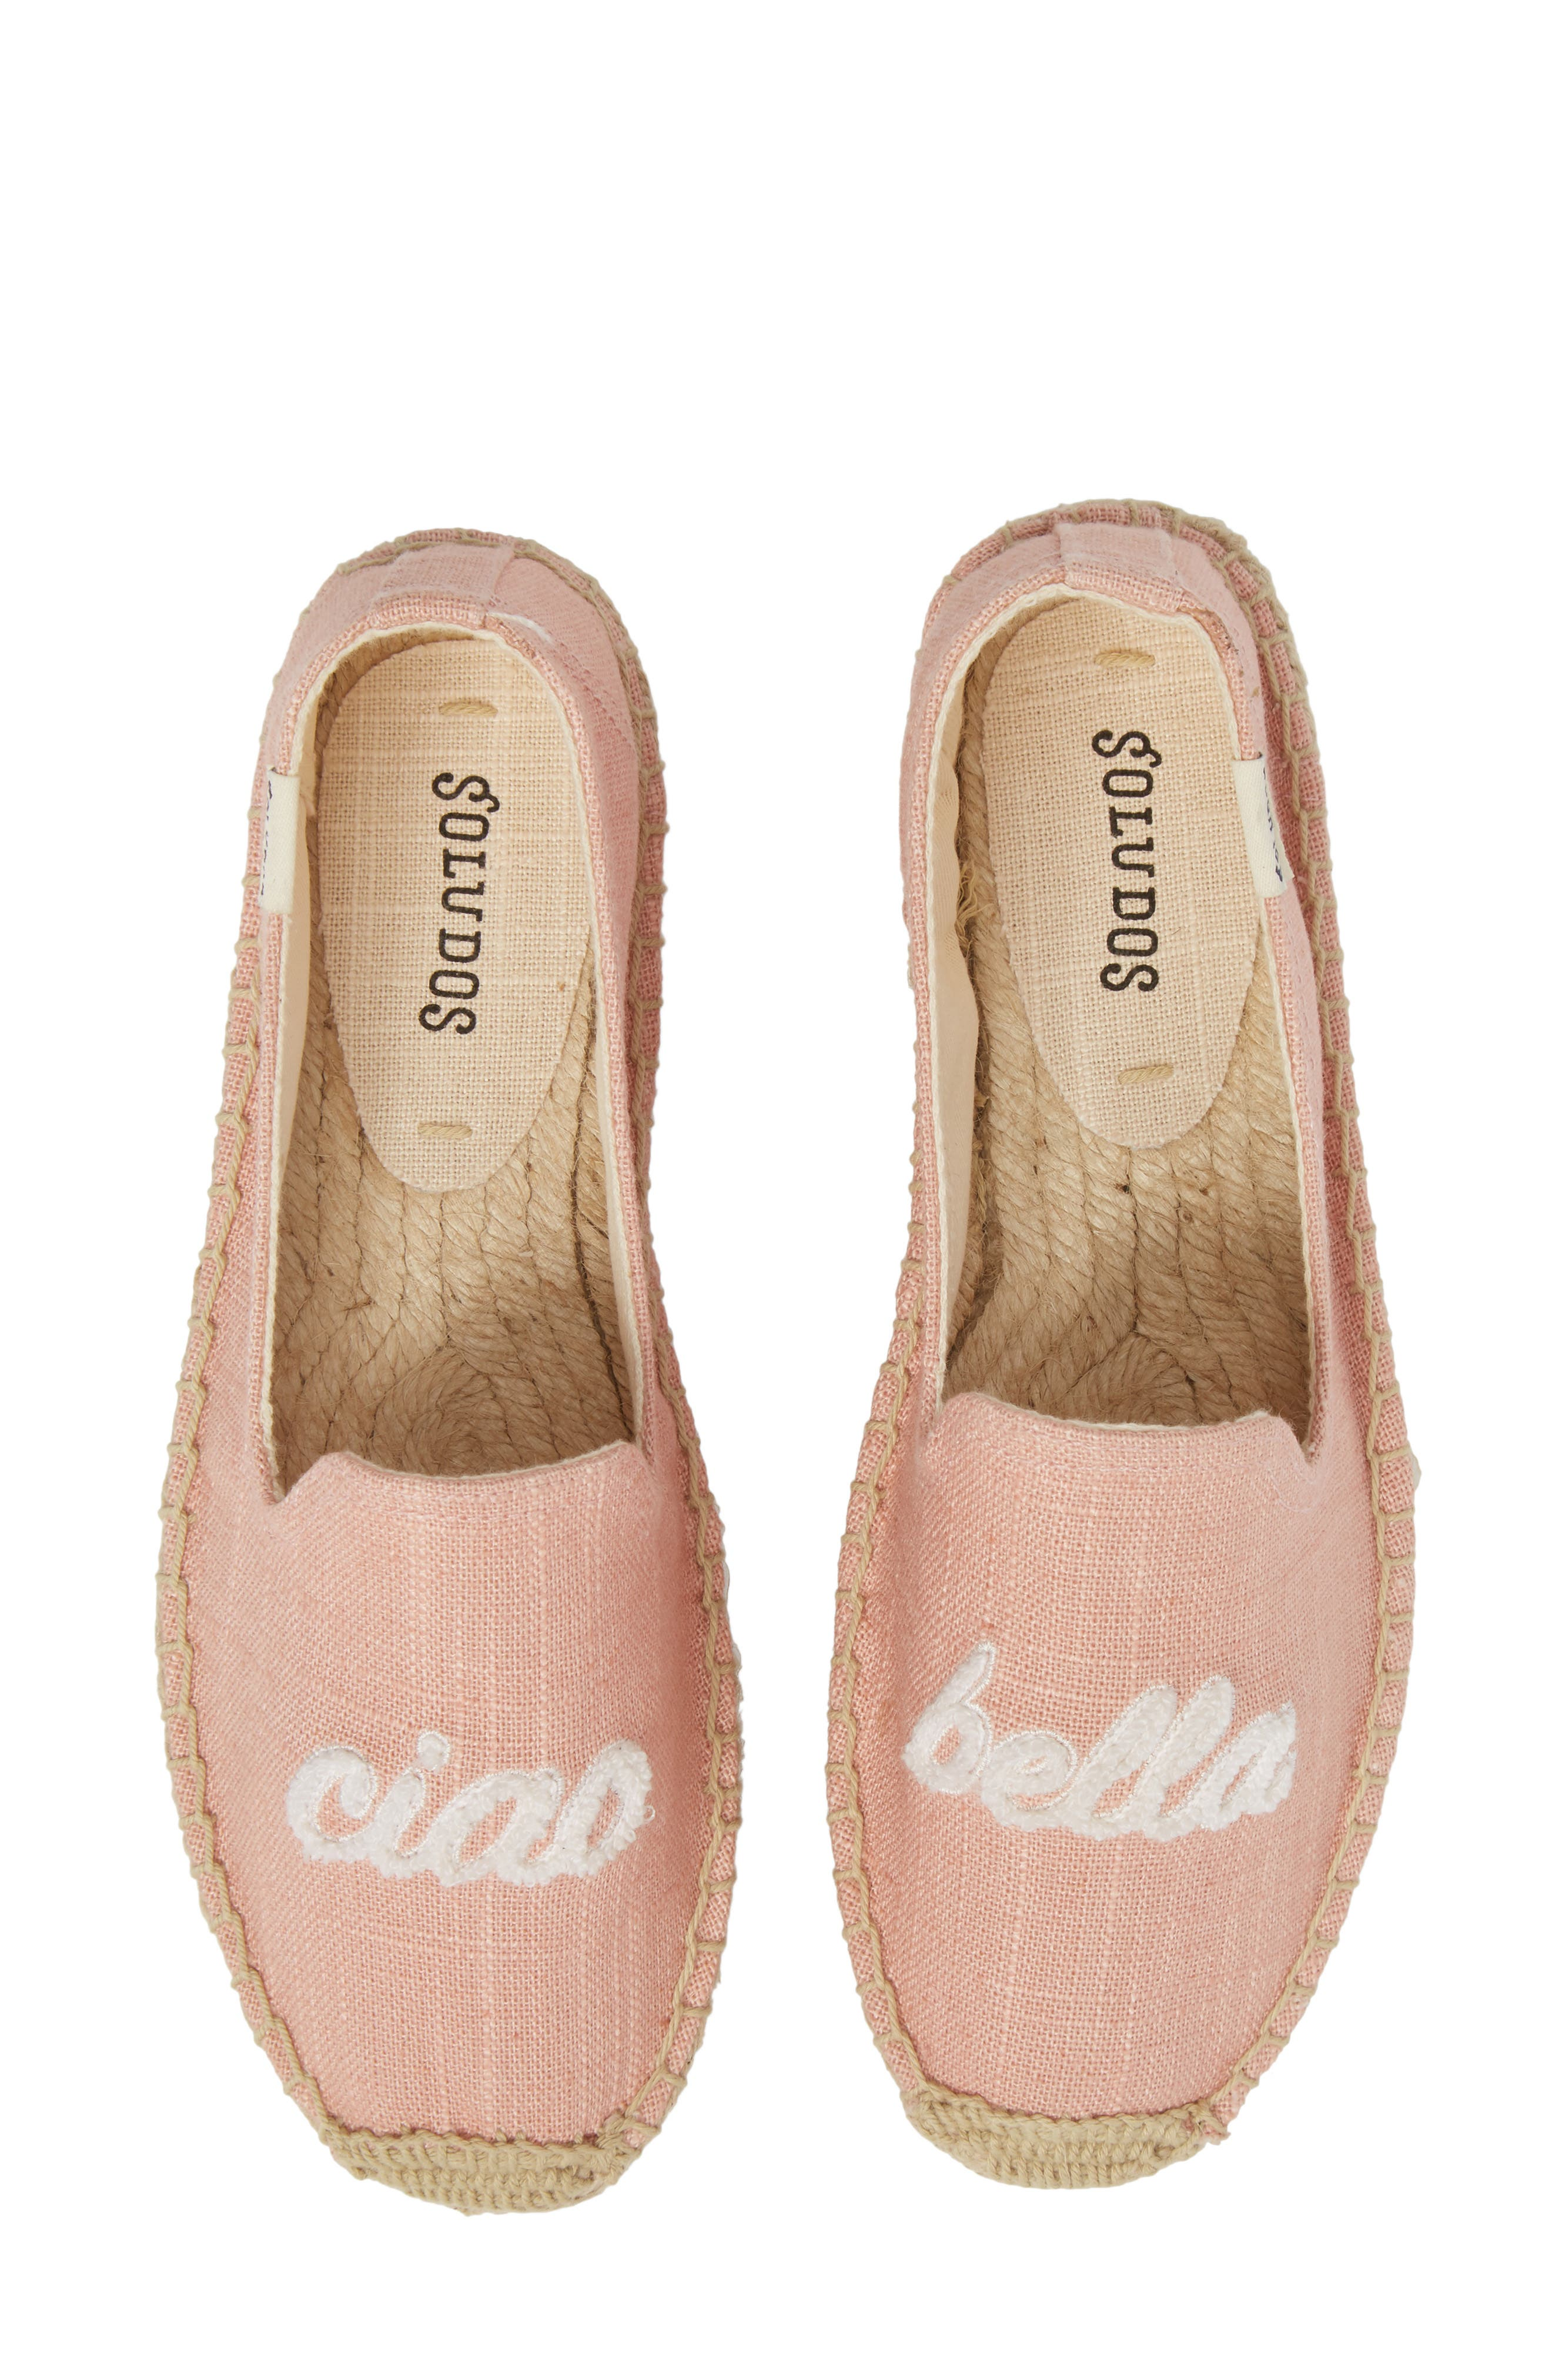 Alternate Image 1 Selected - Soludos Ciao Bella Espadrille Flat (Women)